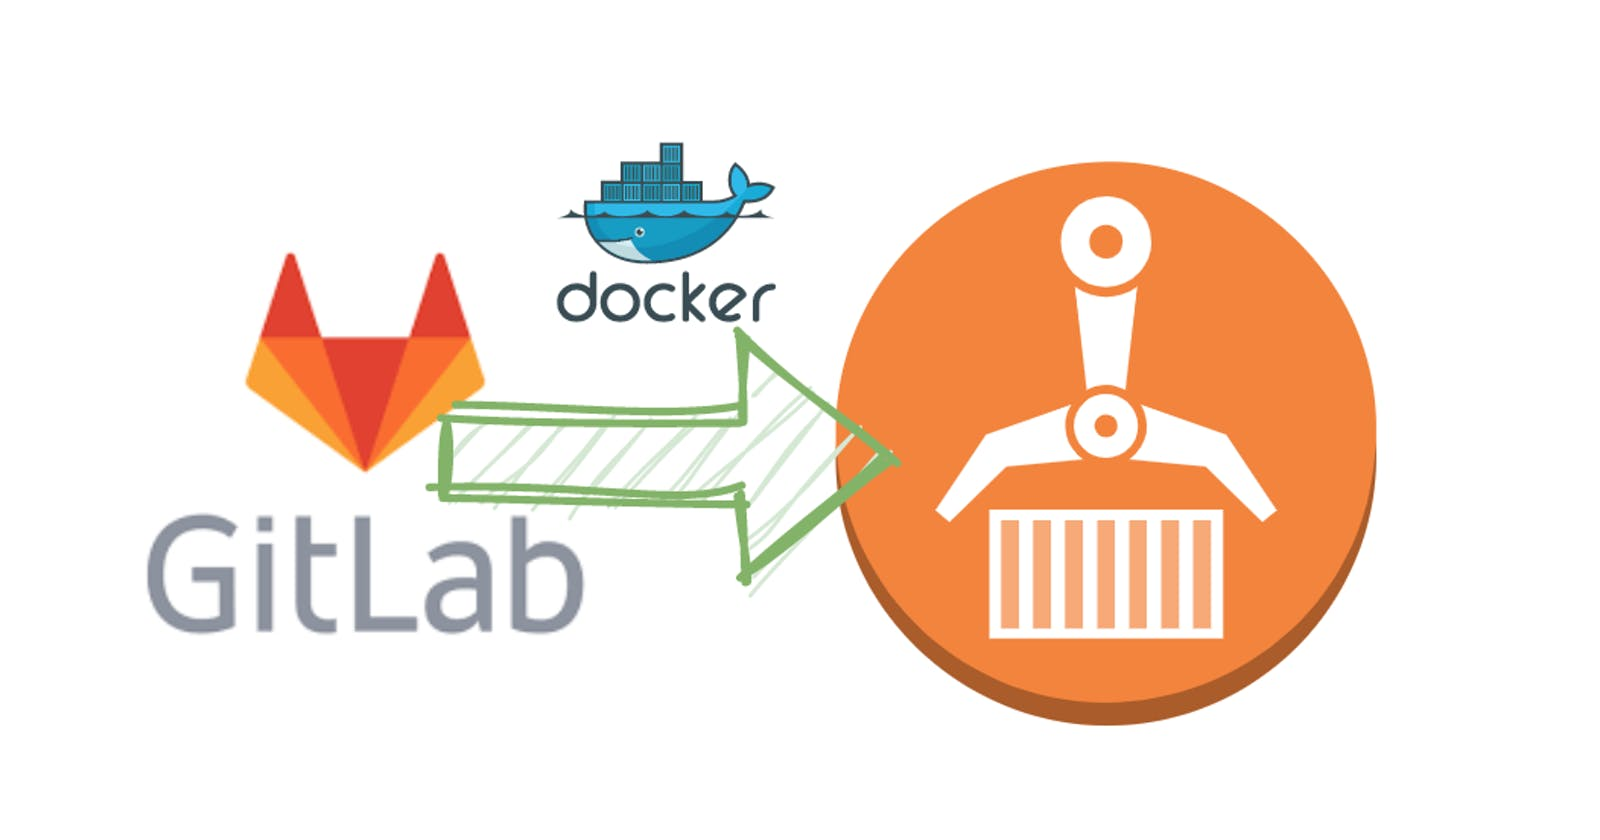 Push your Docker containers from GitLab to Amazon ECR